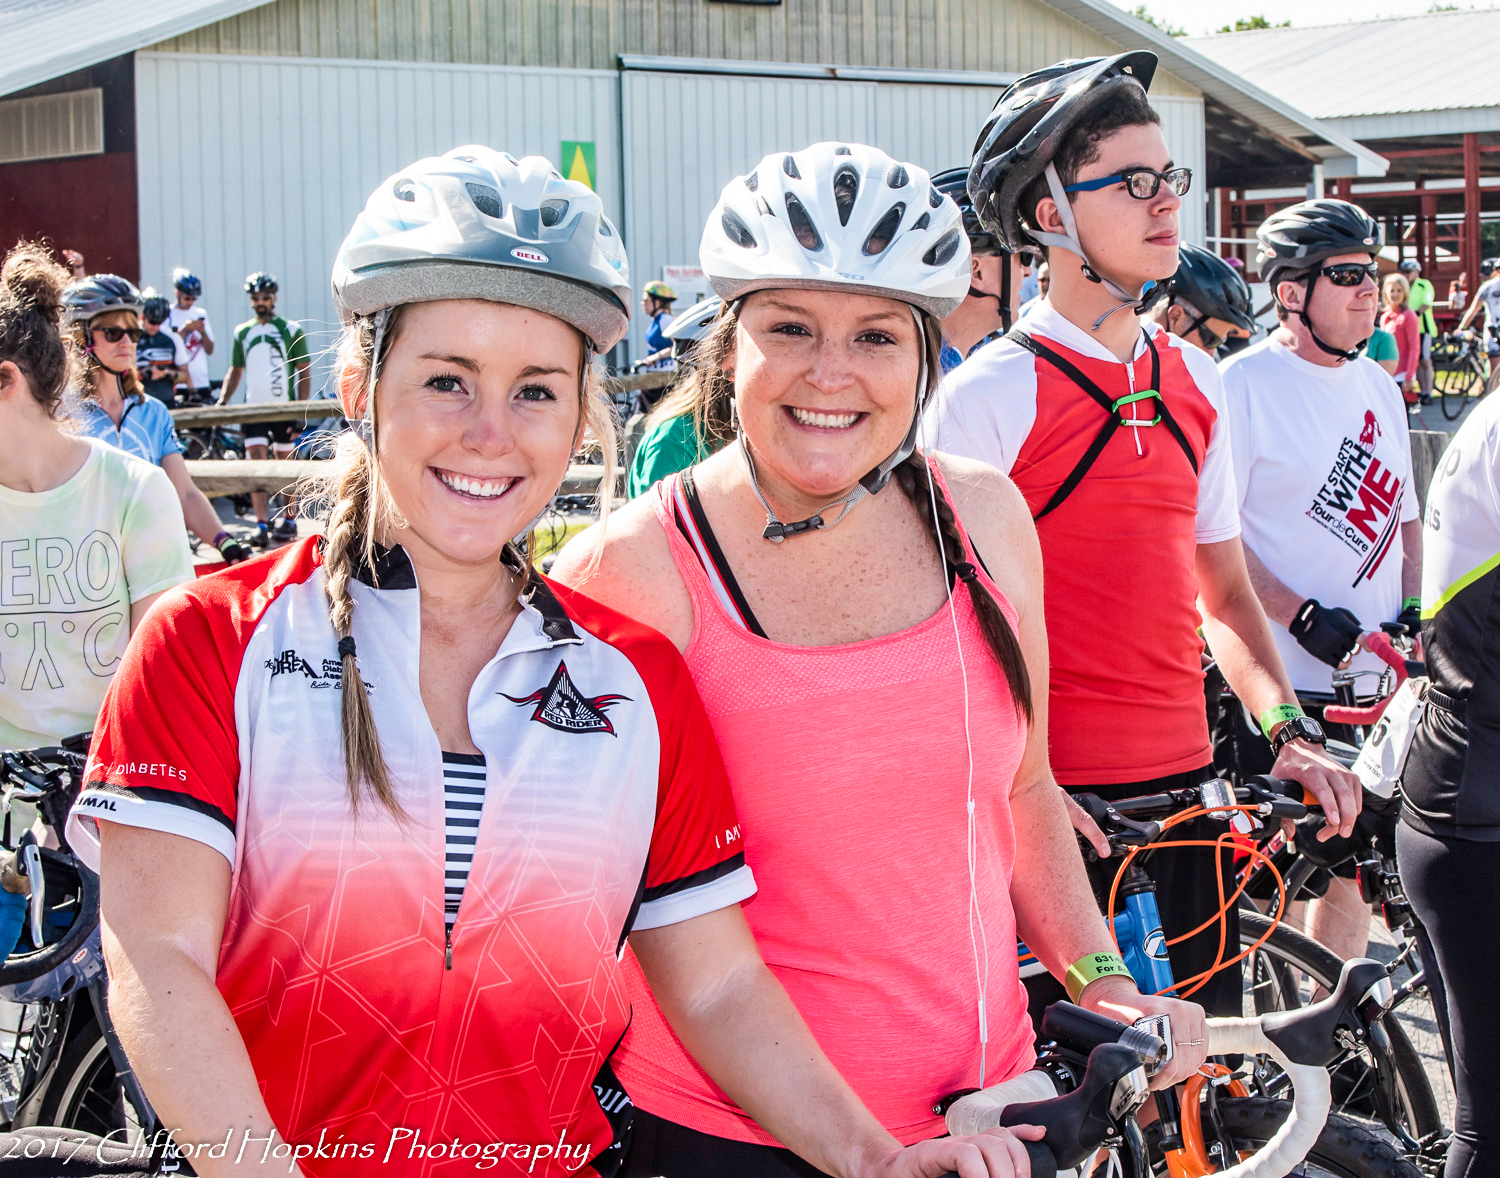 Red Rider family at the 2018 Tour de Cure.  Clifford Hopkins Photography